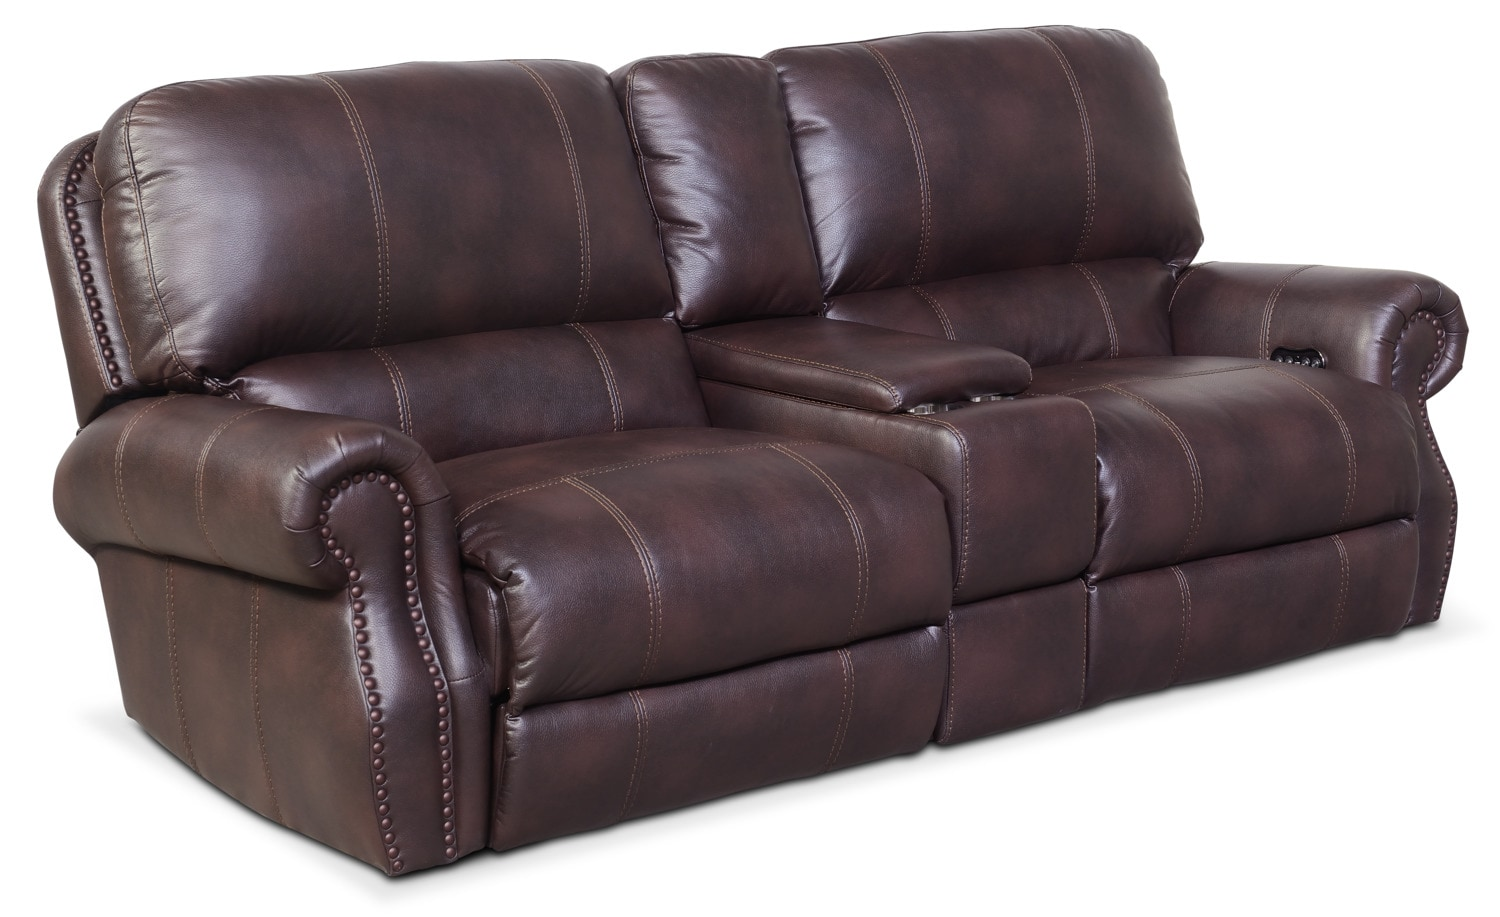 Dartmouth 3-Piece Power Reclining Sofa with Console - Burgundy